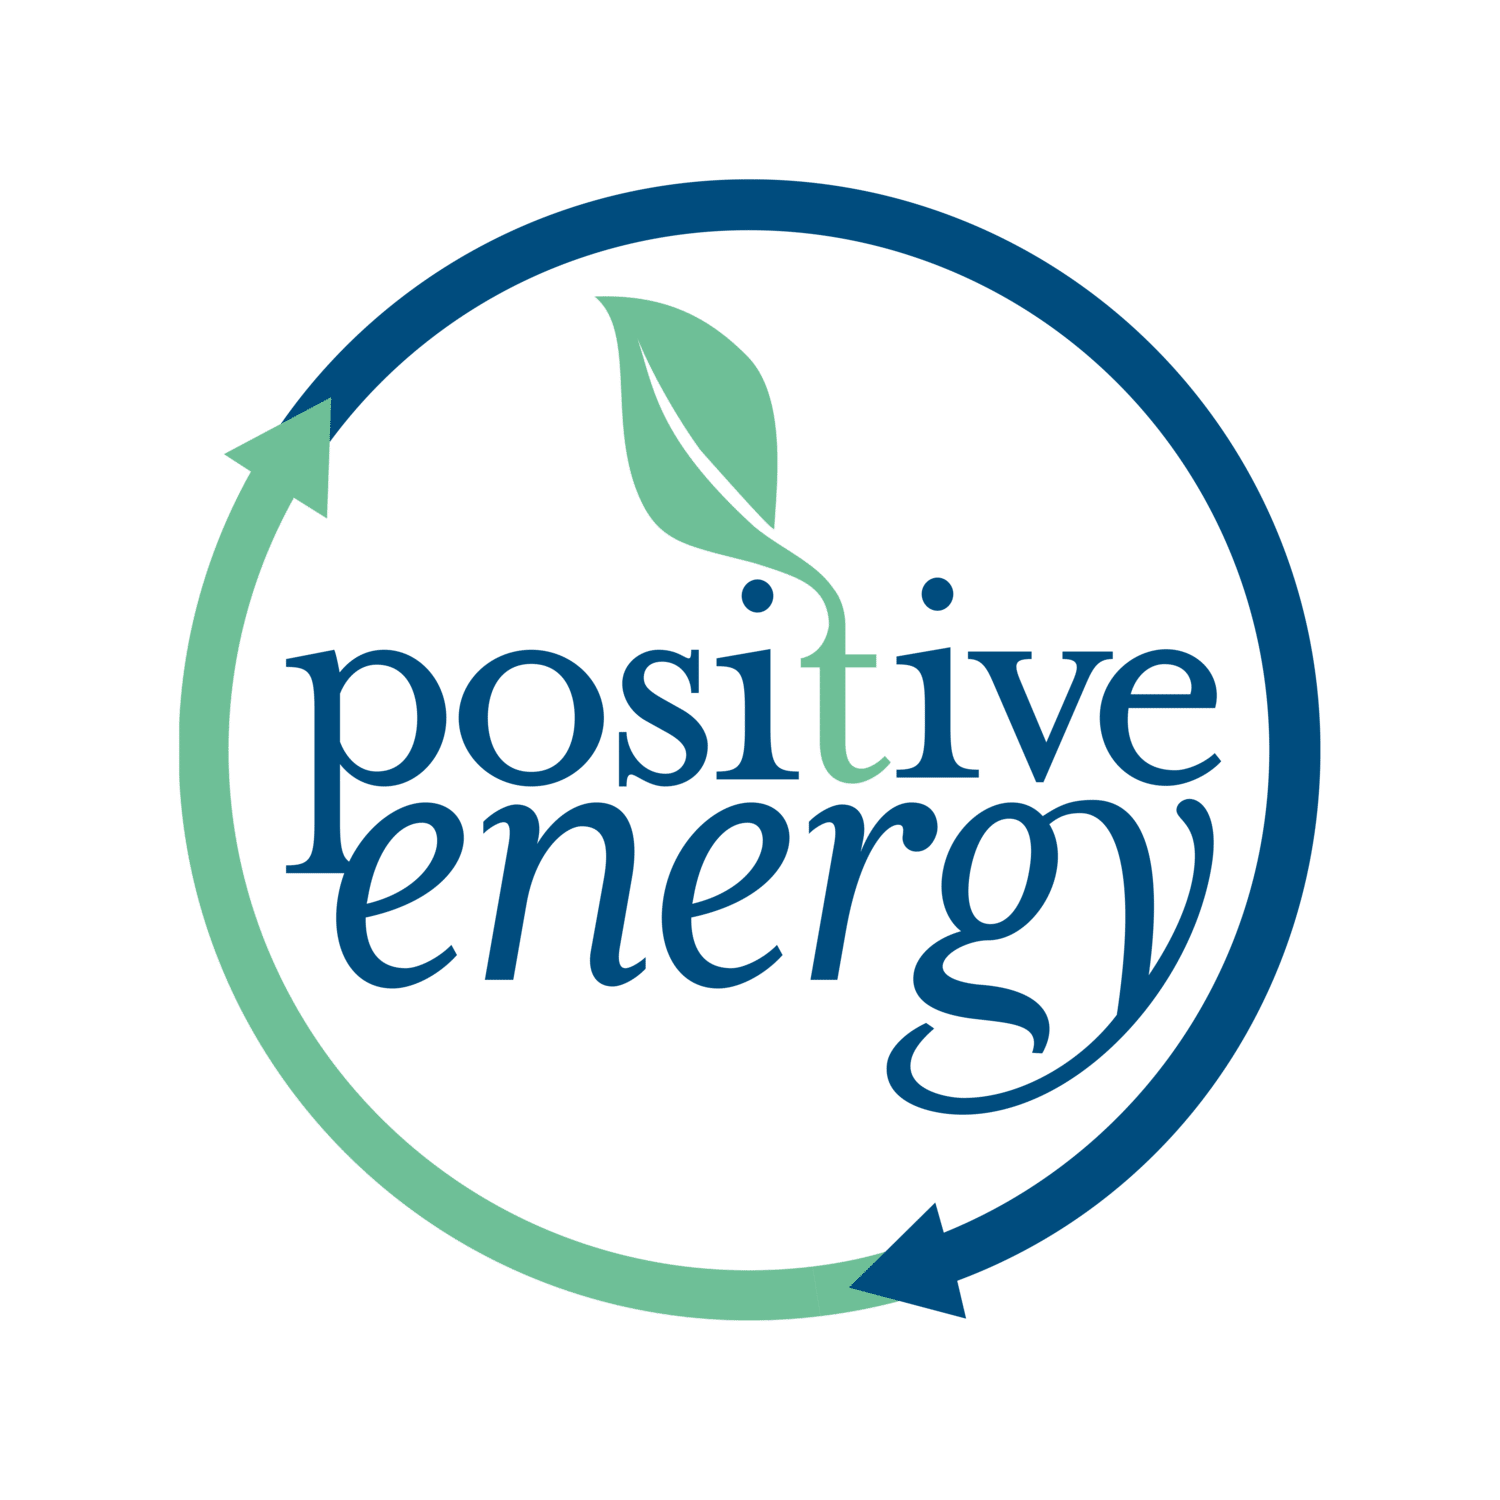 Positive energy - The Building Science podcast